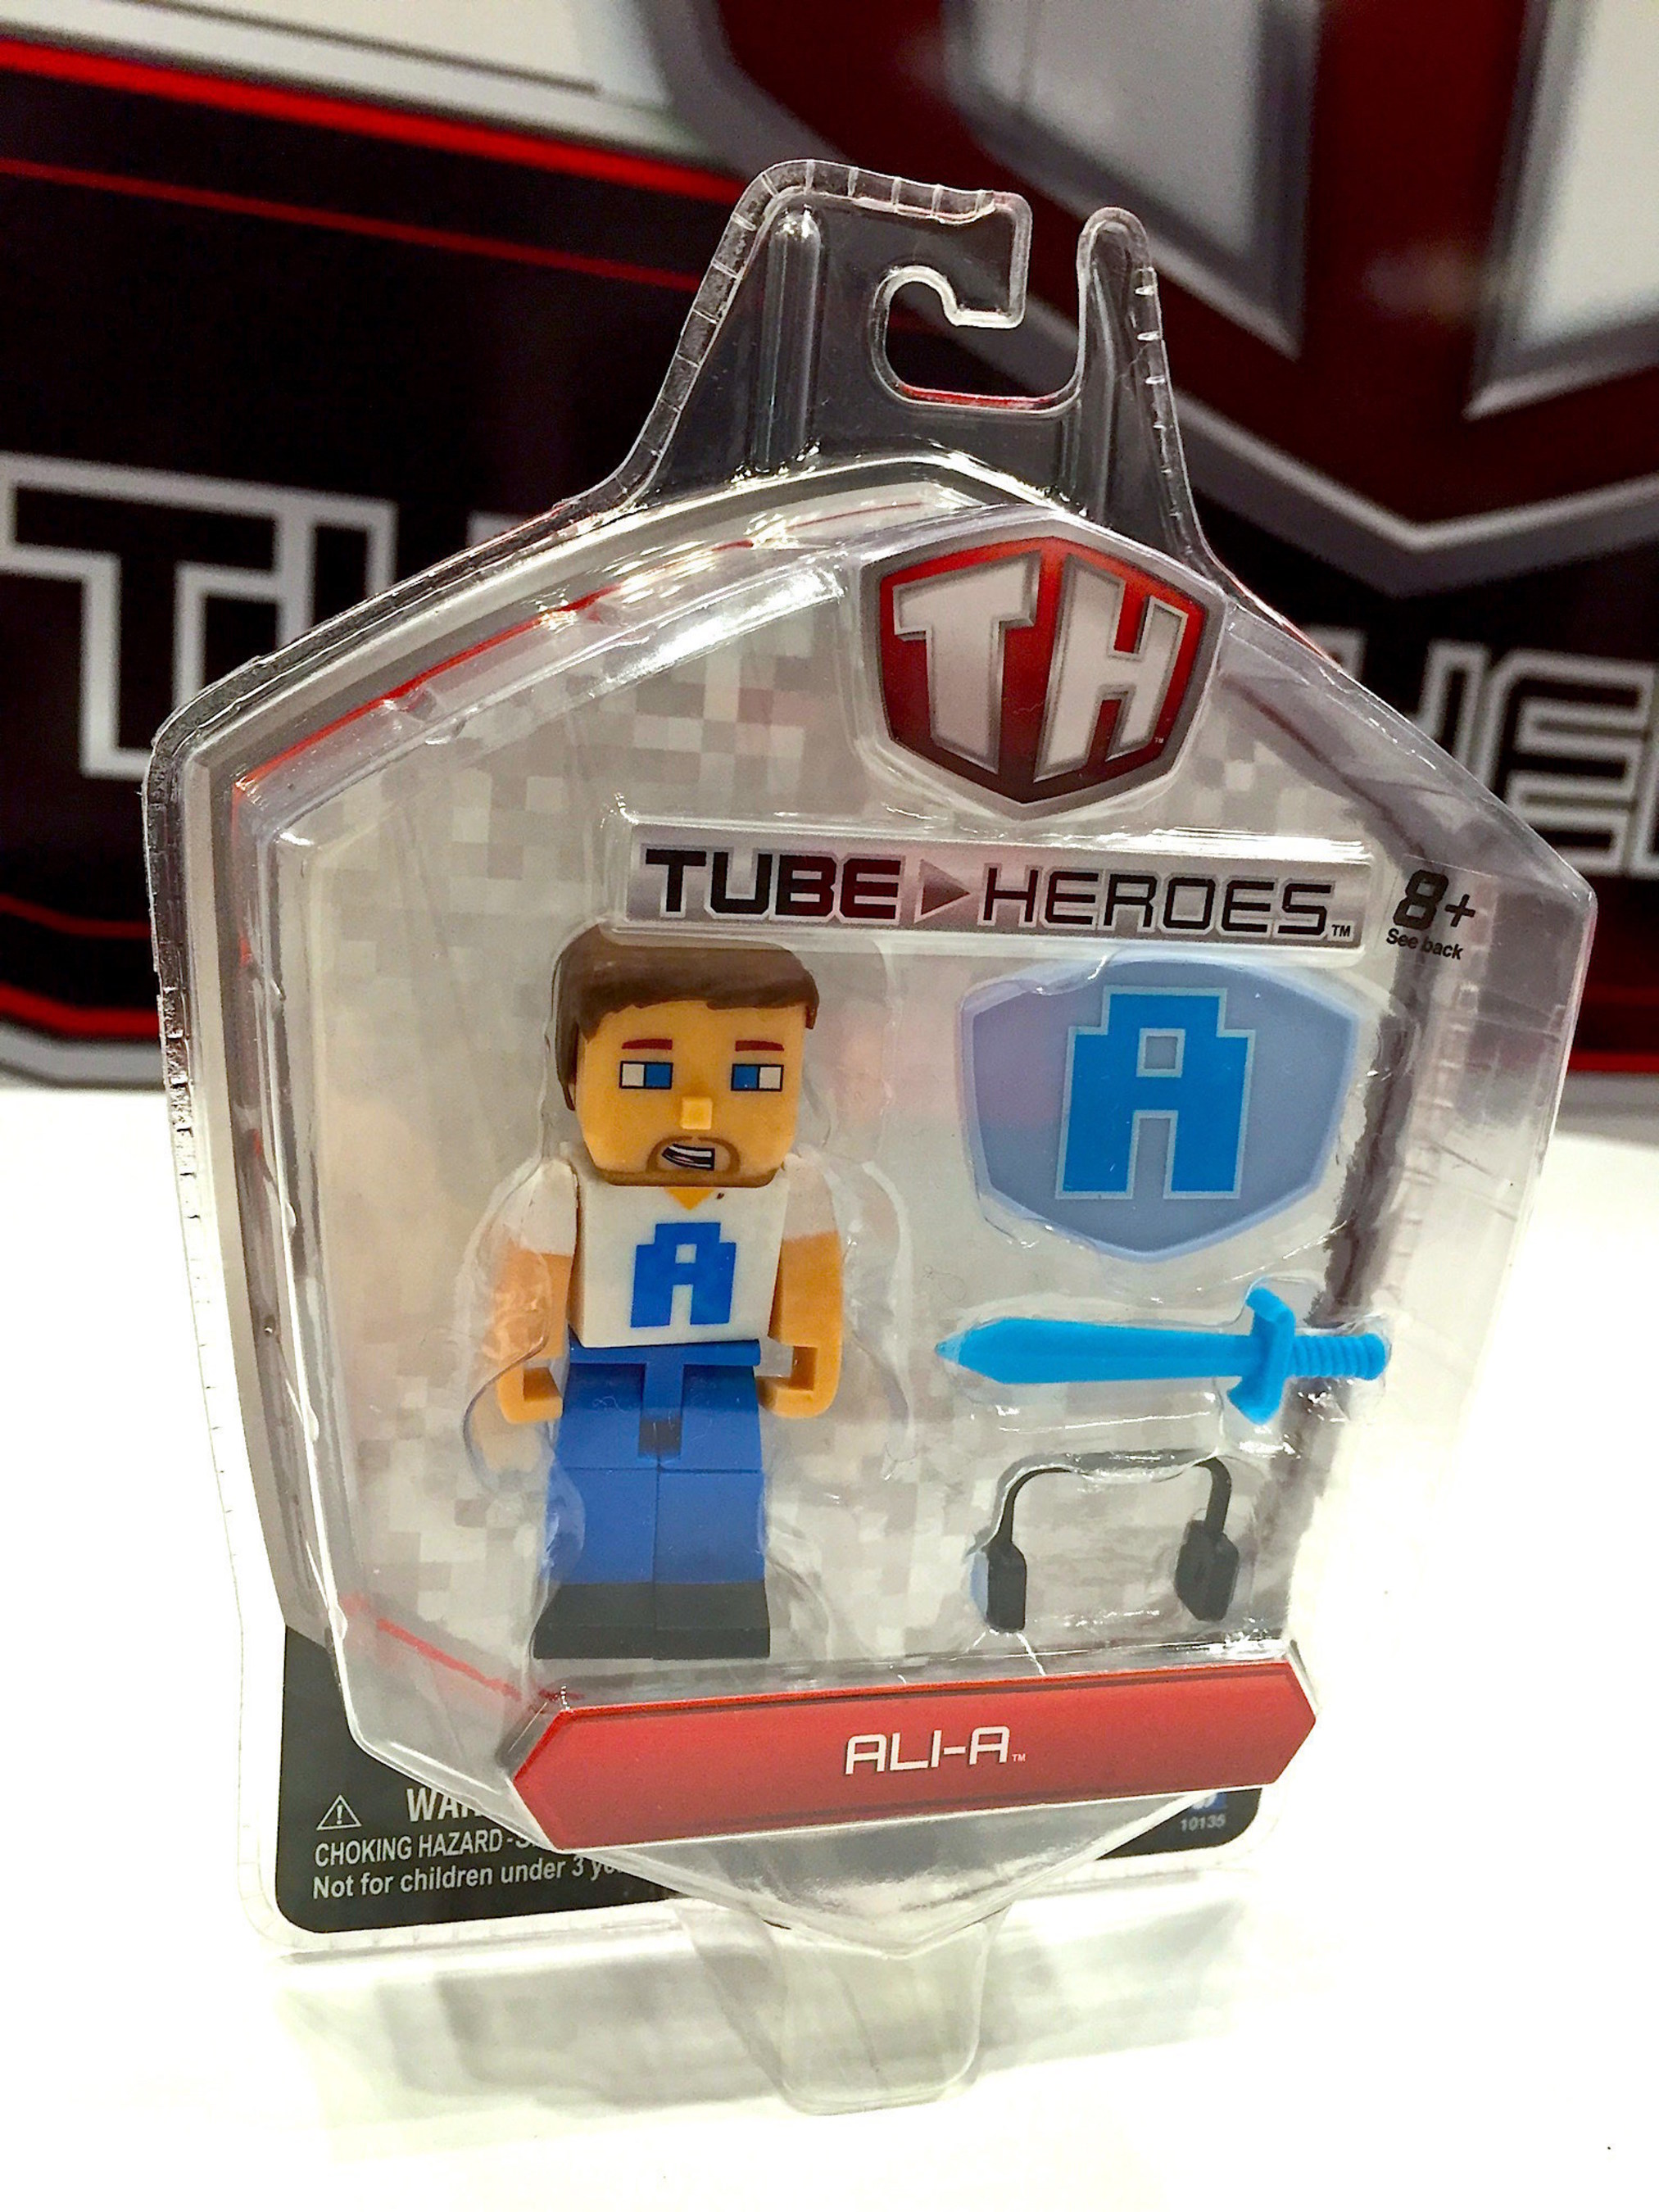 Tube Heroes Releases Holiday Gift Guide for Tween Gaming Fans